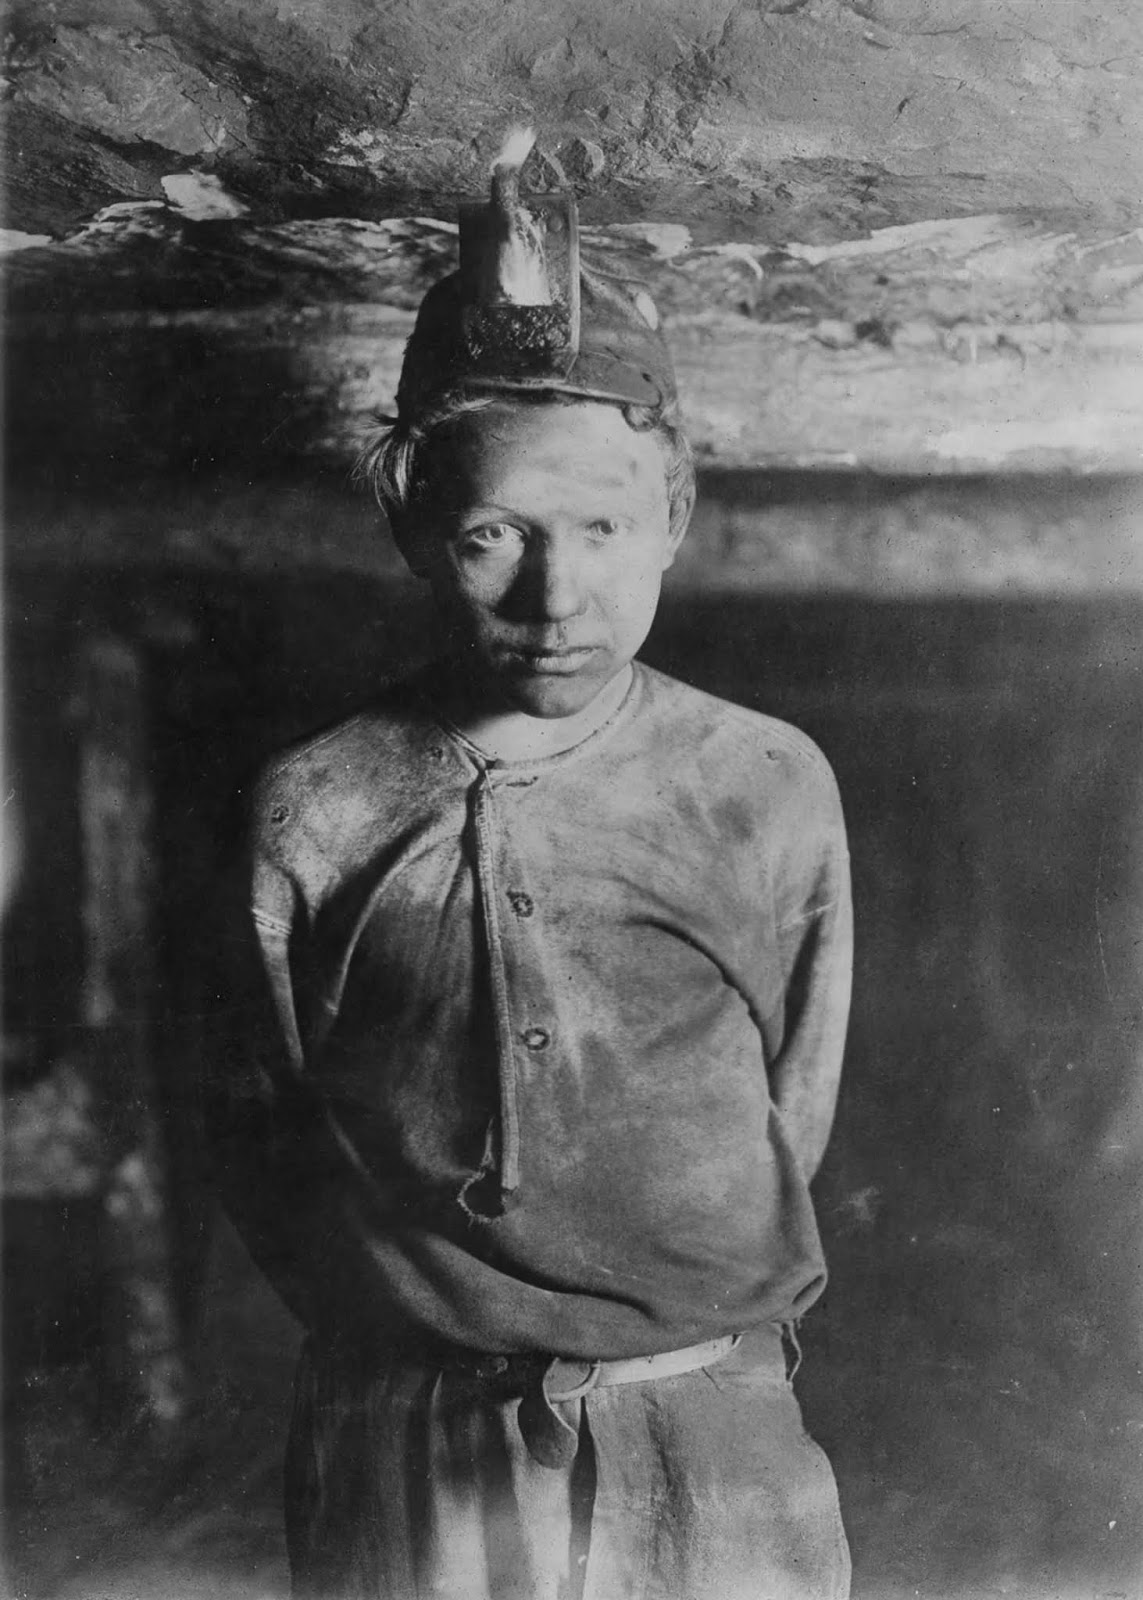 A trapper boy, one mile inside Turkey Knob Mine in Macdonald, West Virginia. 1908.